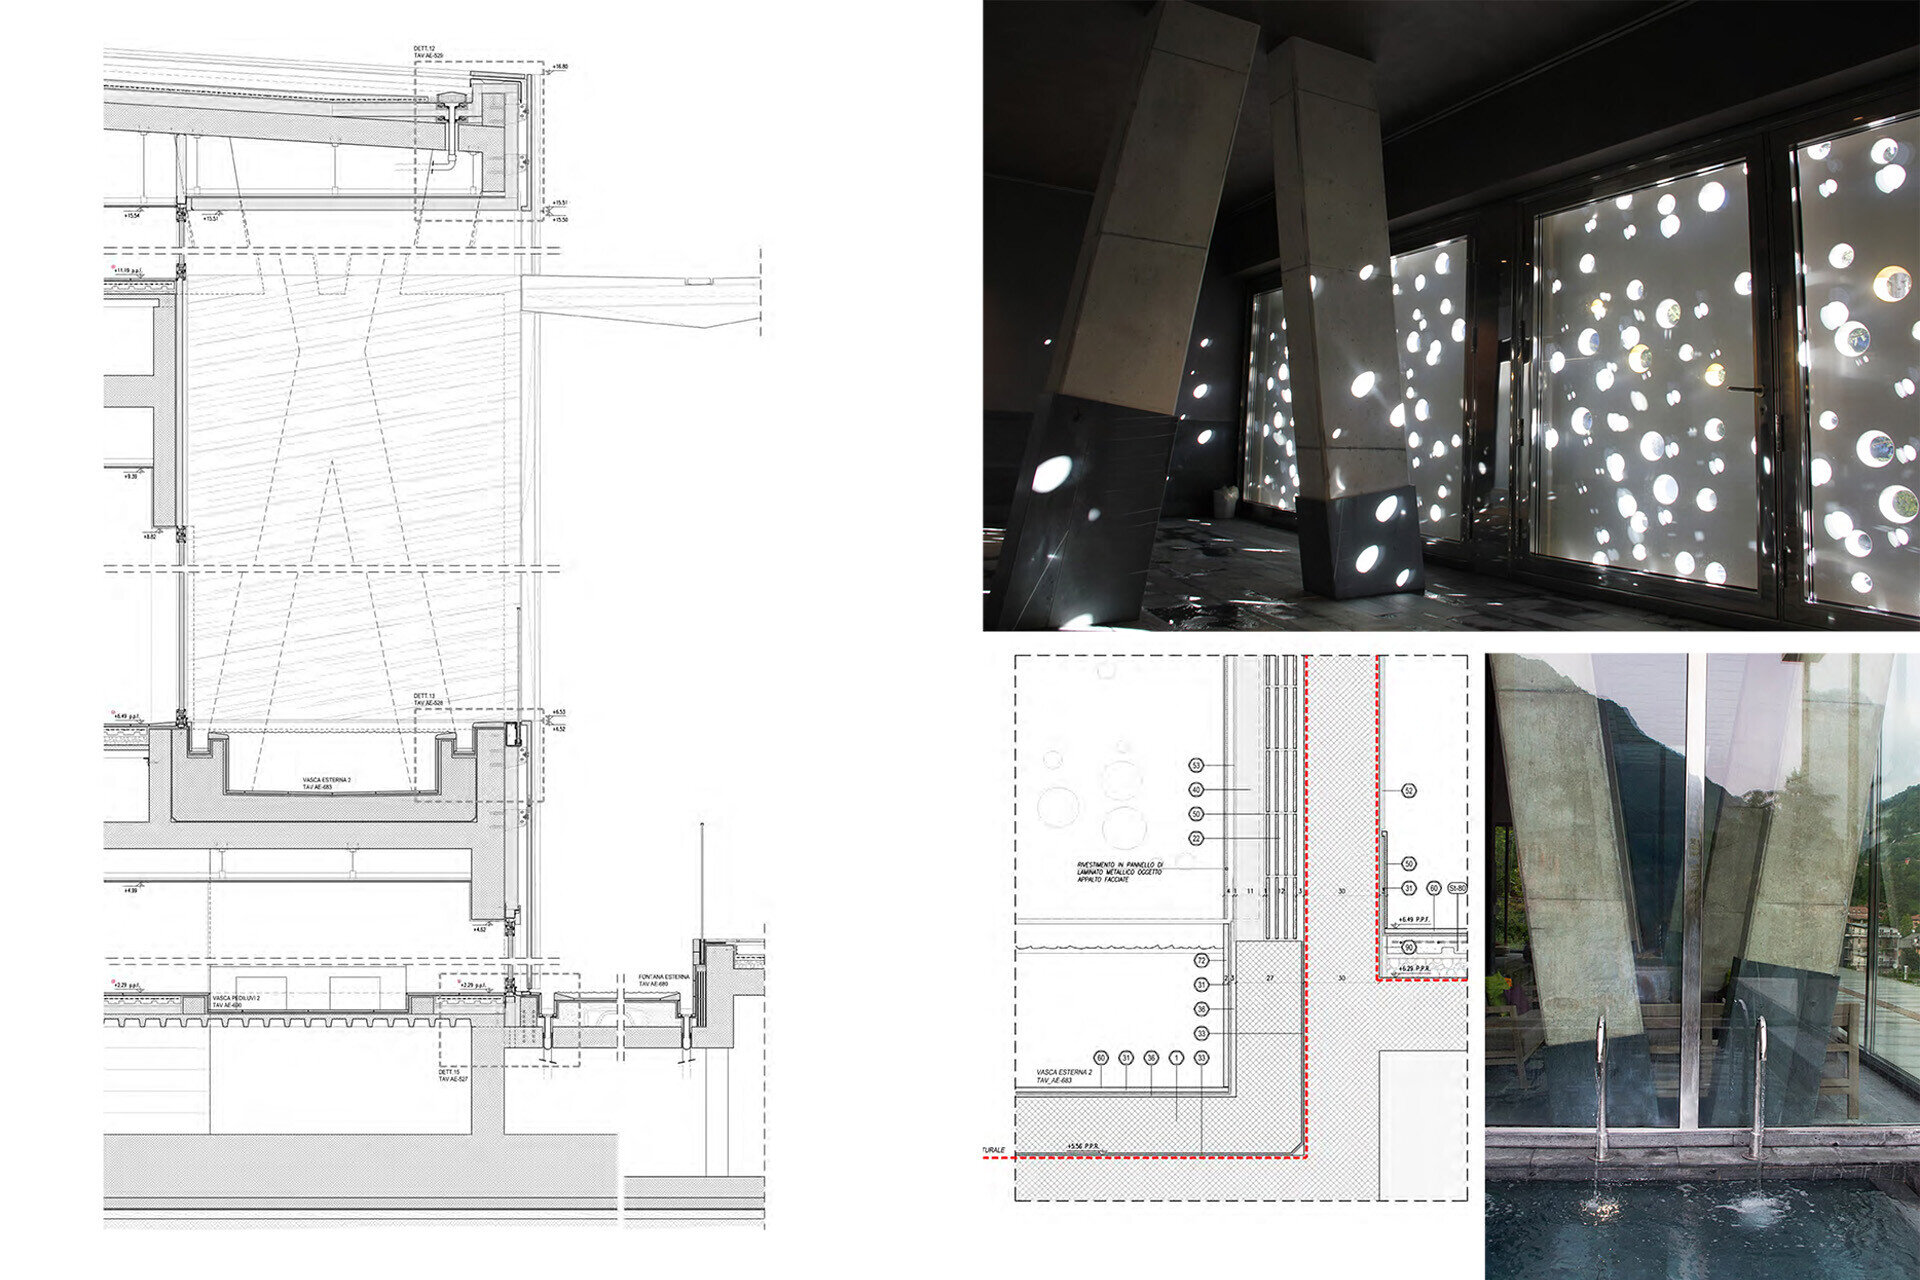 Facade design engineering by SCE Project San pellegrino Dettagli